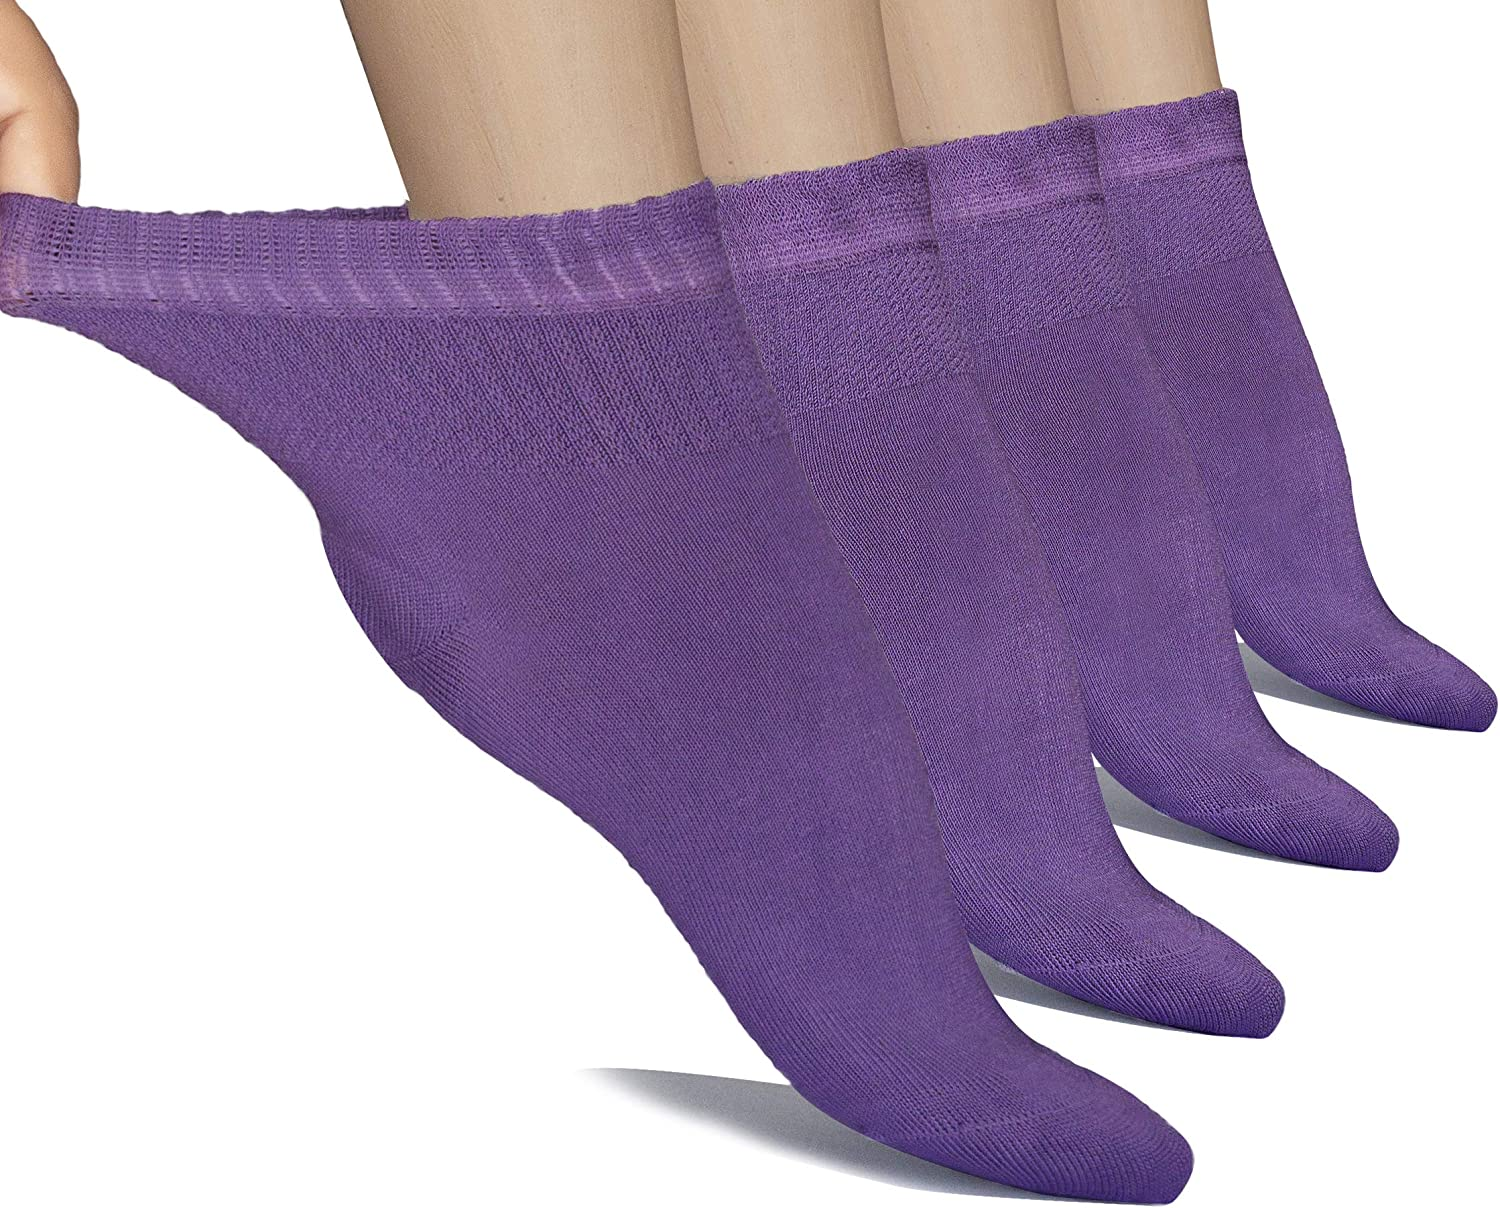 Hugh Ugoli Women's Loose Diabetic Ankle Socks, Bamboo, Wide, Thin, Seamless Toe and Non-Binding Top, 4 Pairs: Clothing